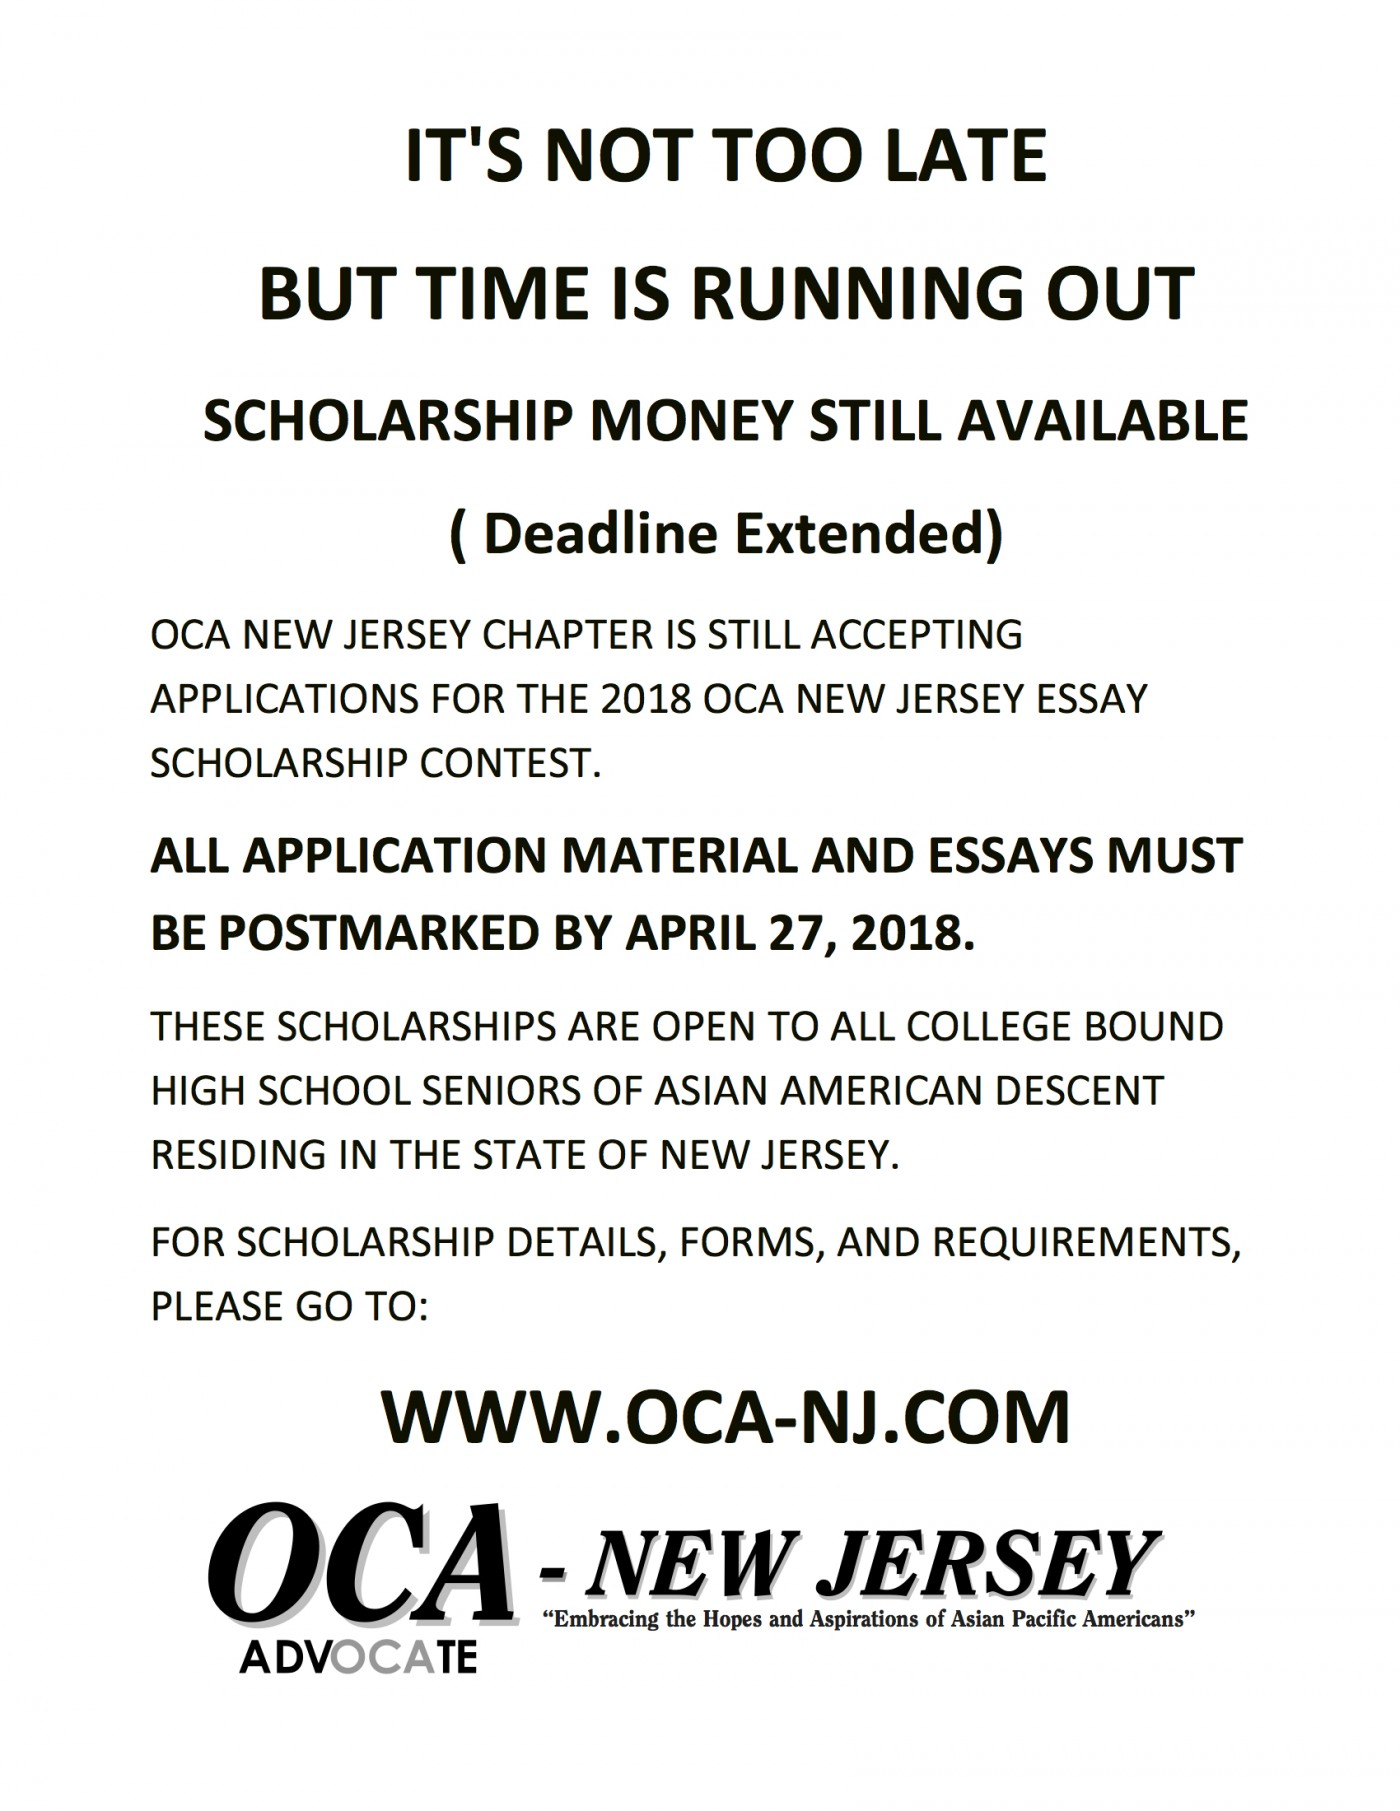 014 Essay Example Scholarships Entended Deadline Oca Nj Shocking 2018 Canada 2019 No For High School Juniors 1400